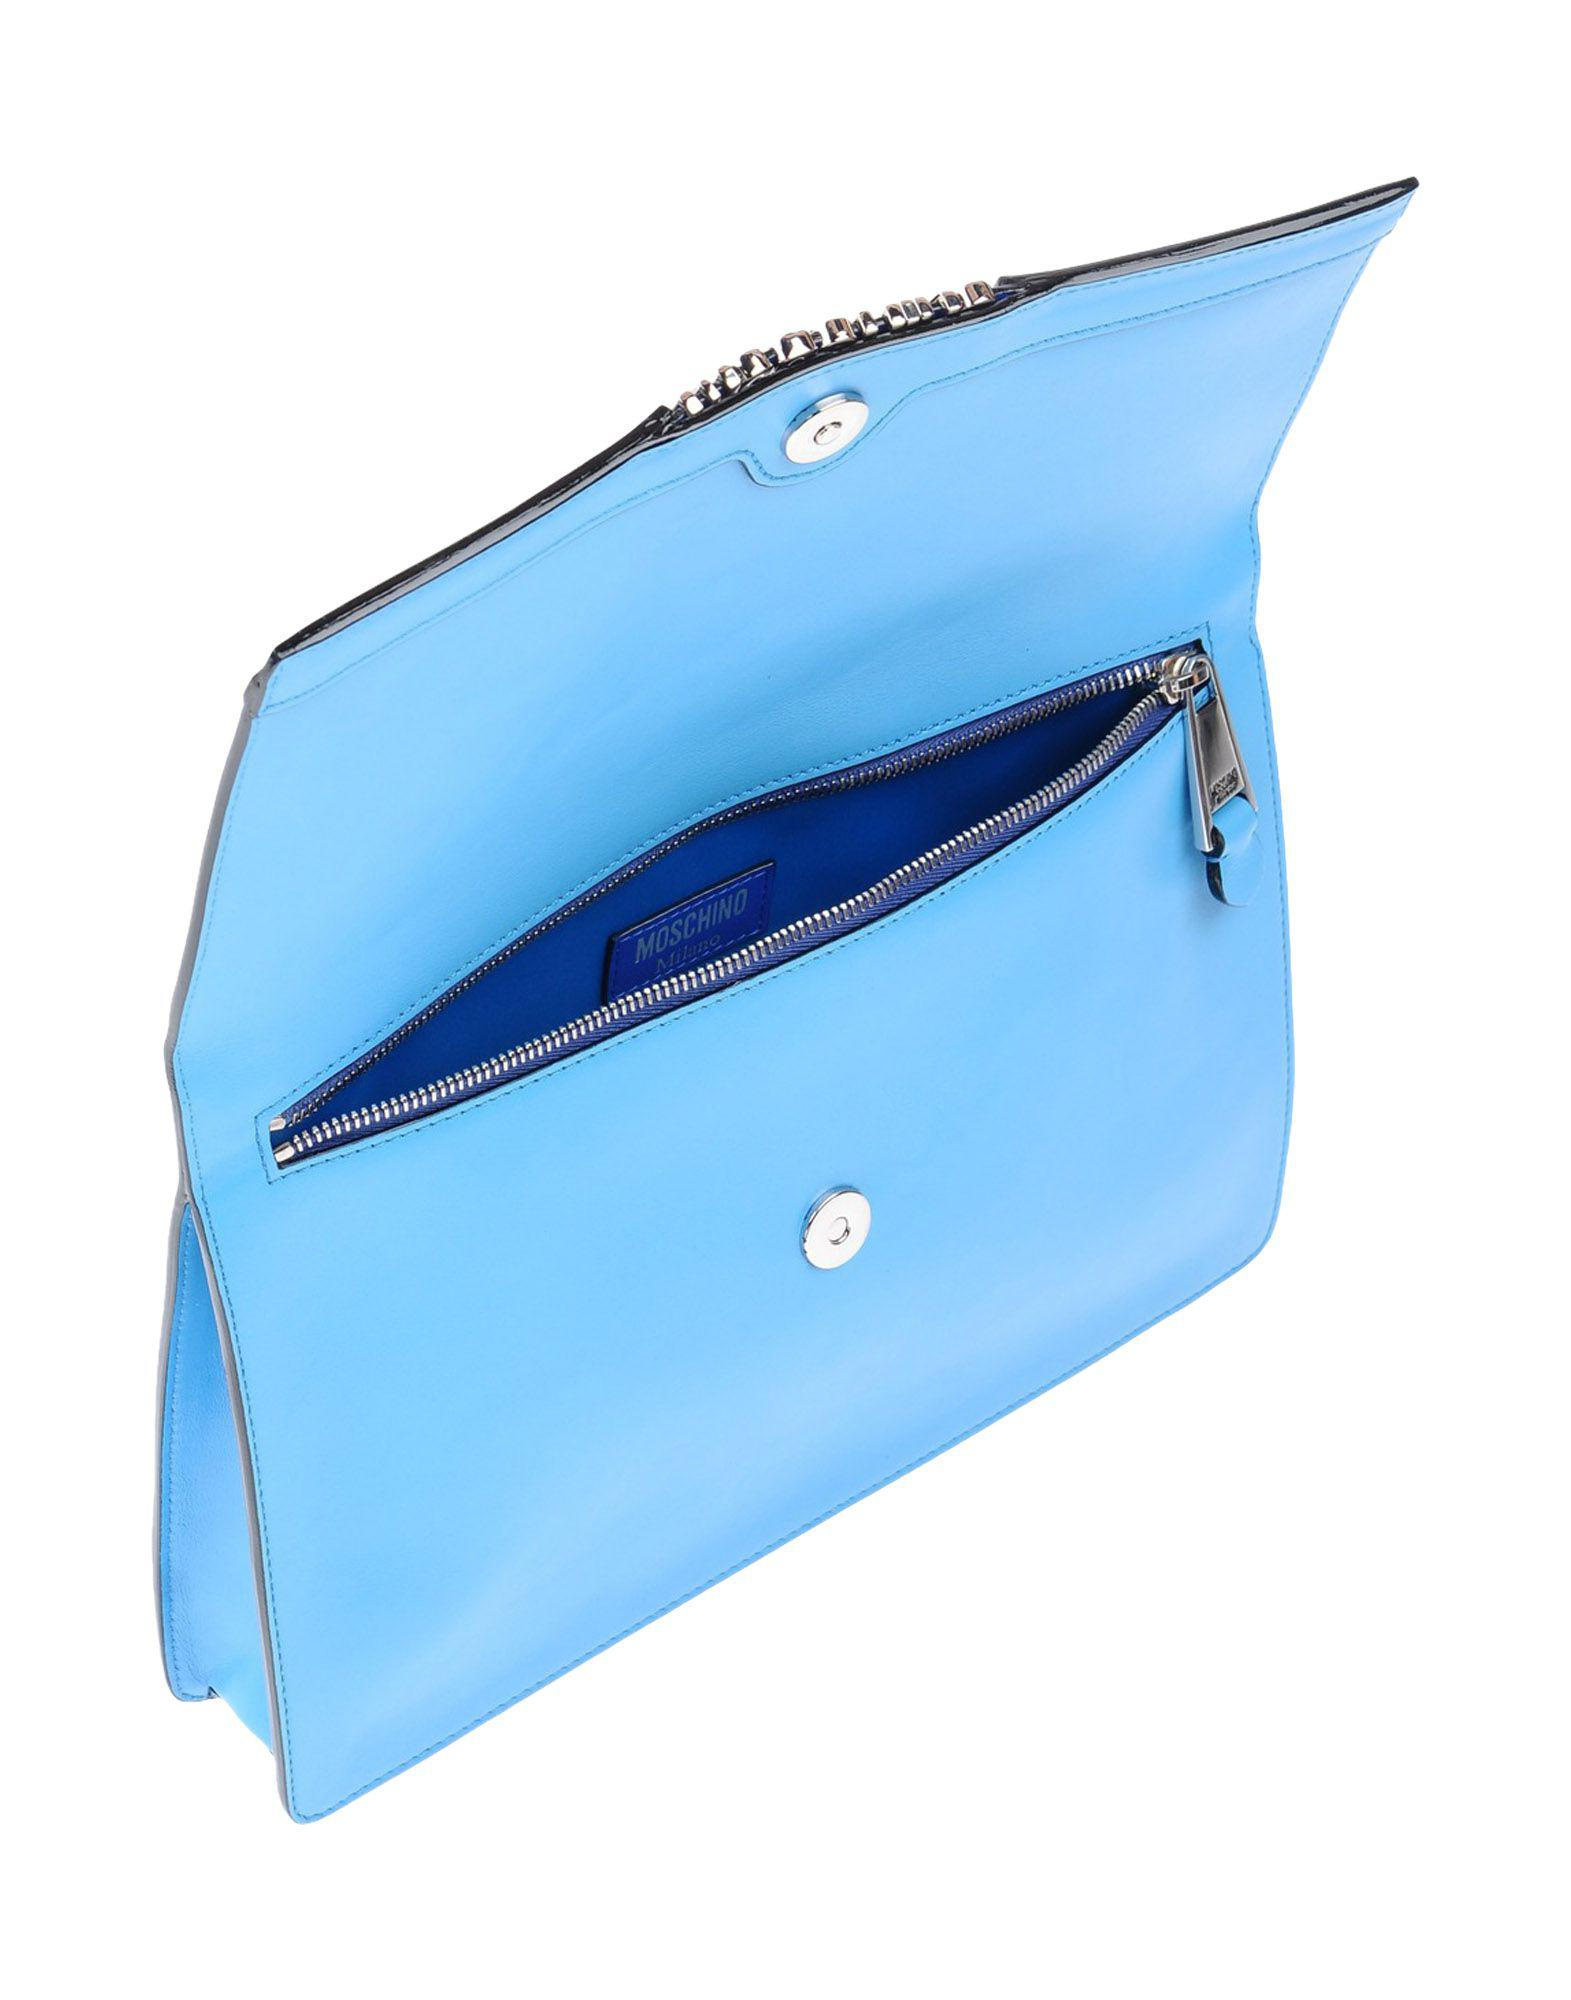 Moschino Leather Cross-body Bags in Blue